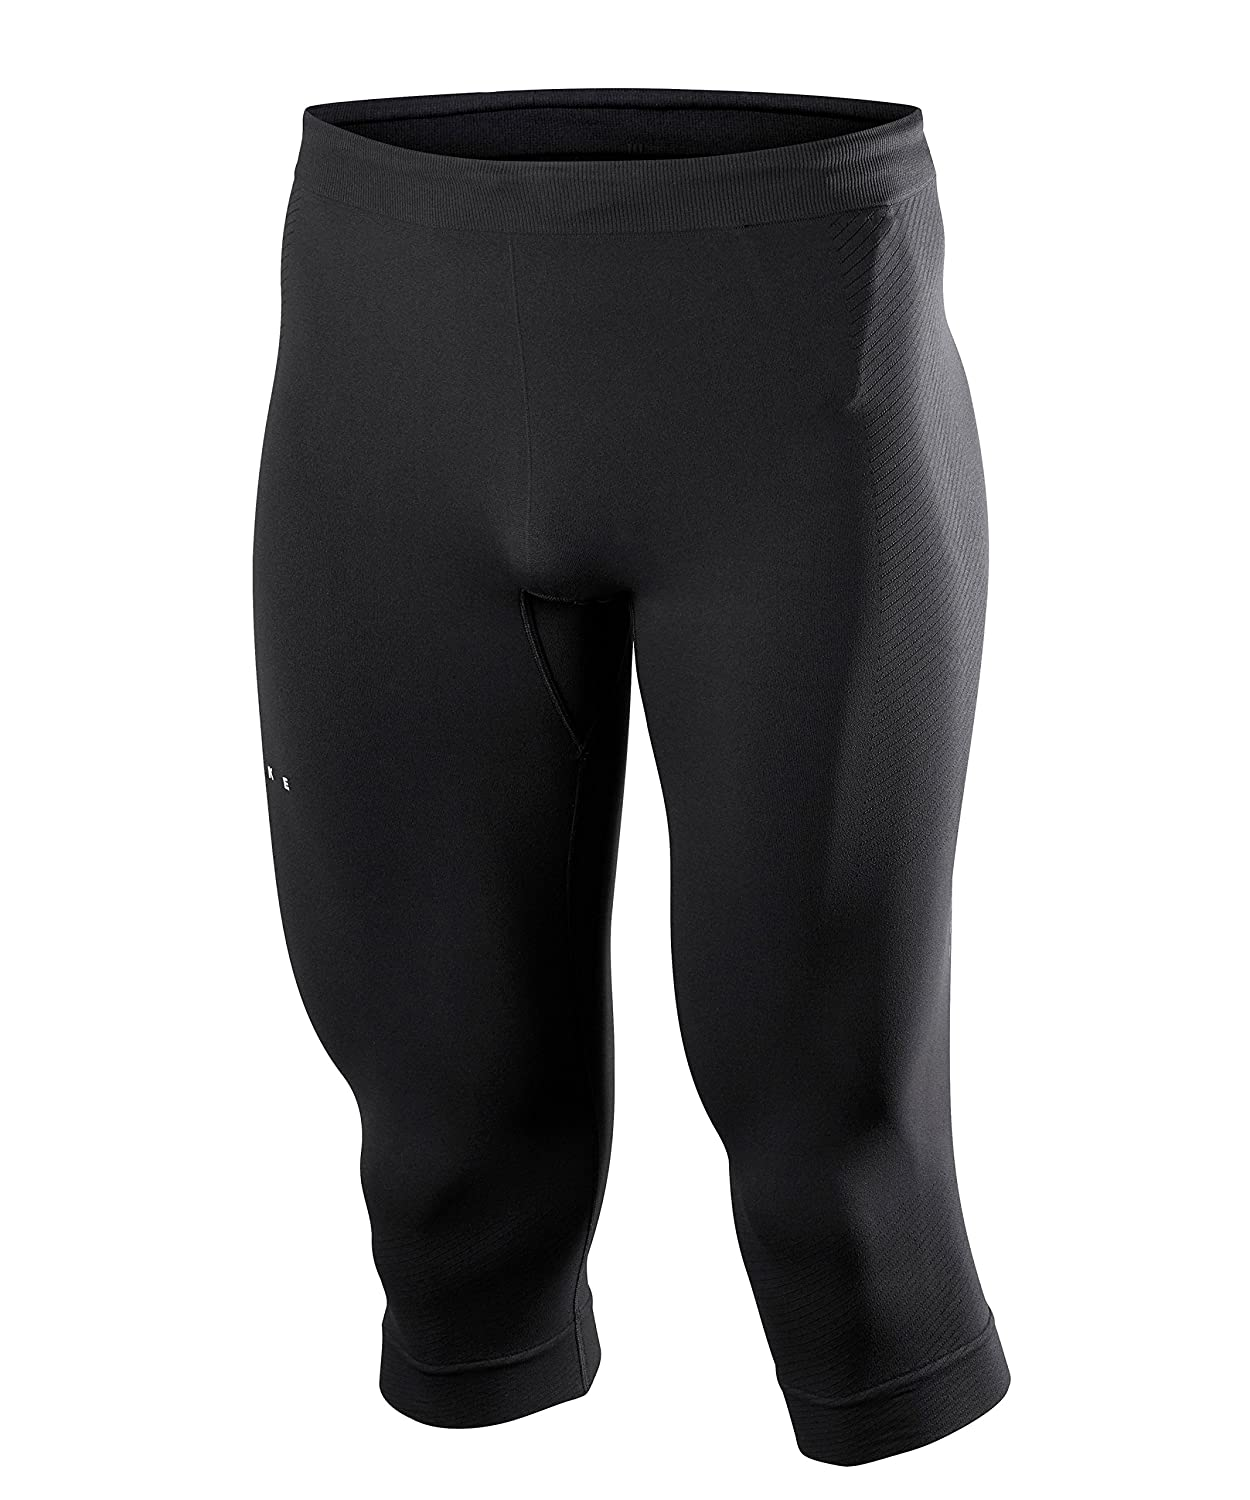 FALKE – Pantaloni running 3/4 Tights Light Men Sport da uomo FALAH|#FALKE 38357